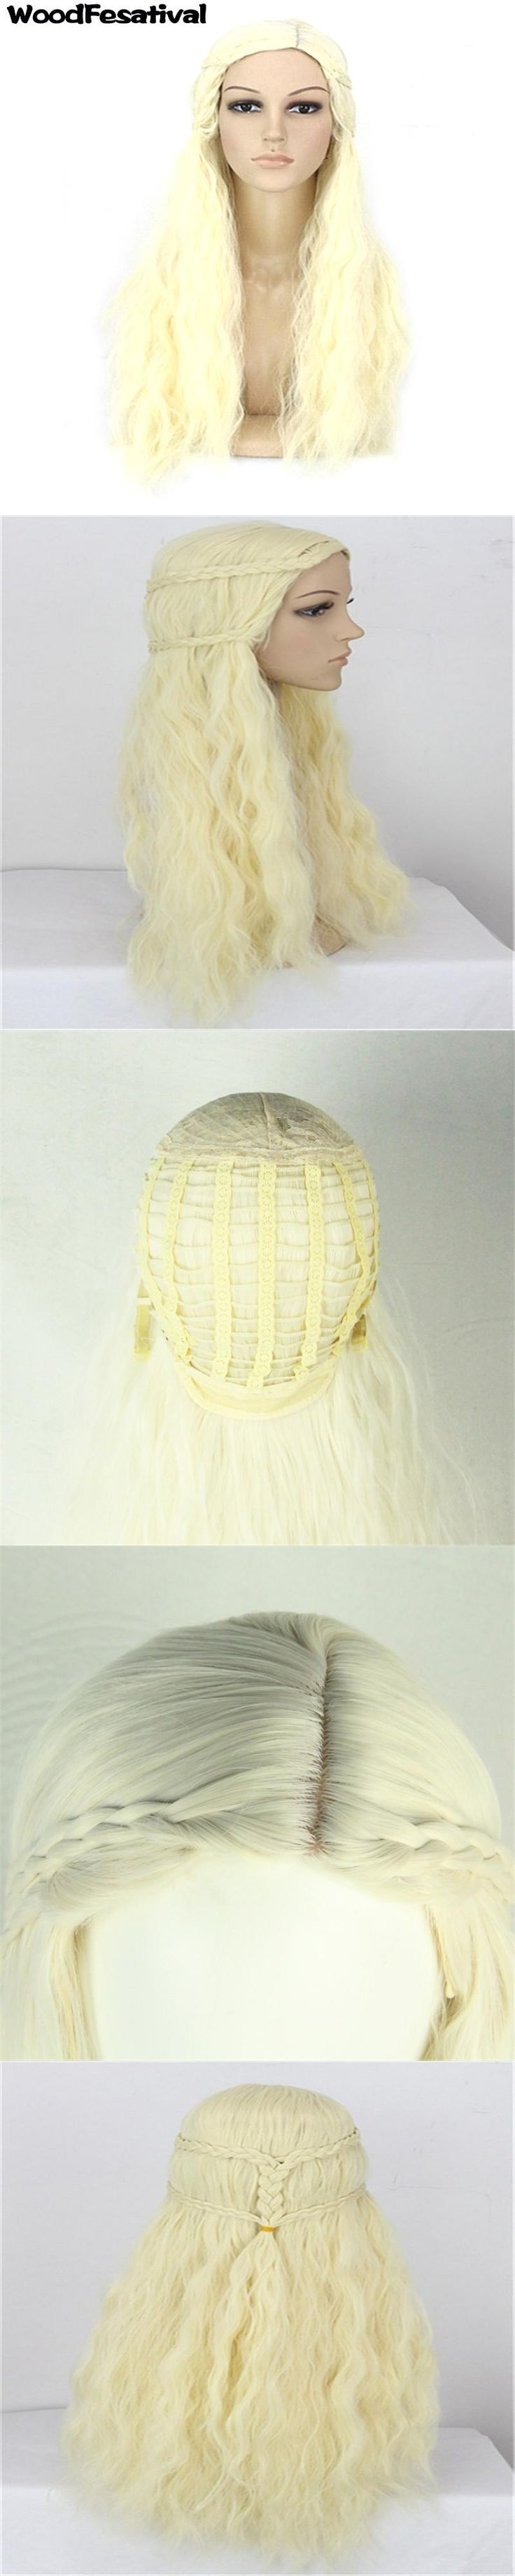 heat resistant anime wigs long platinum wig curly synthetic wigs for women blonde wig ponytail WoodFestival